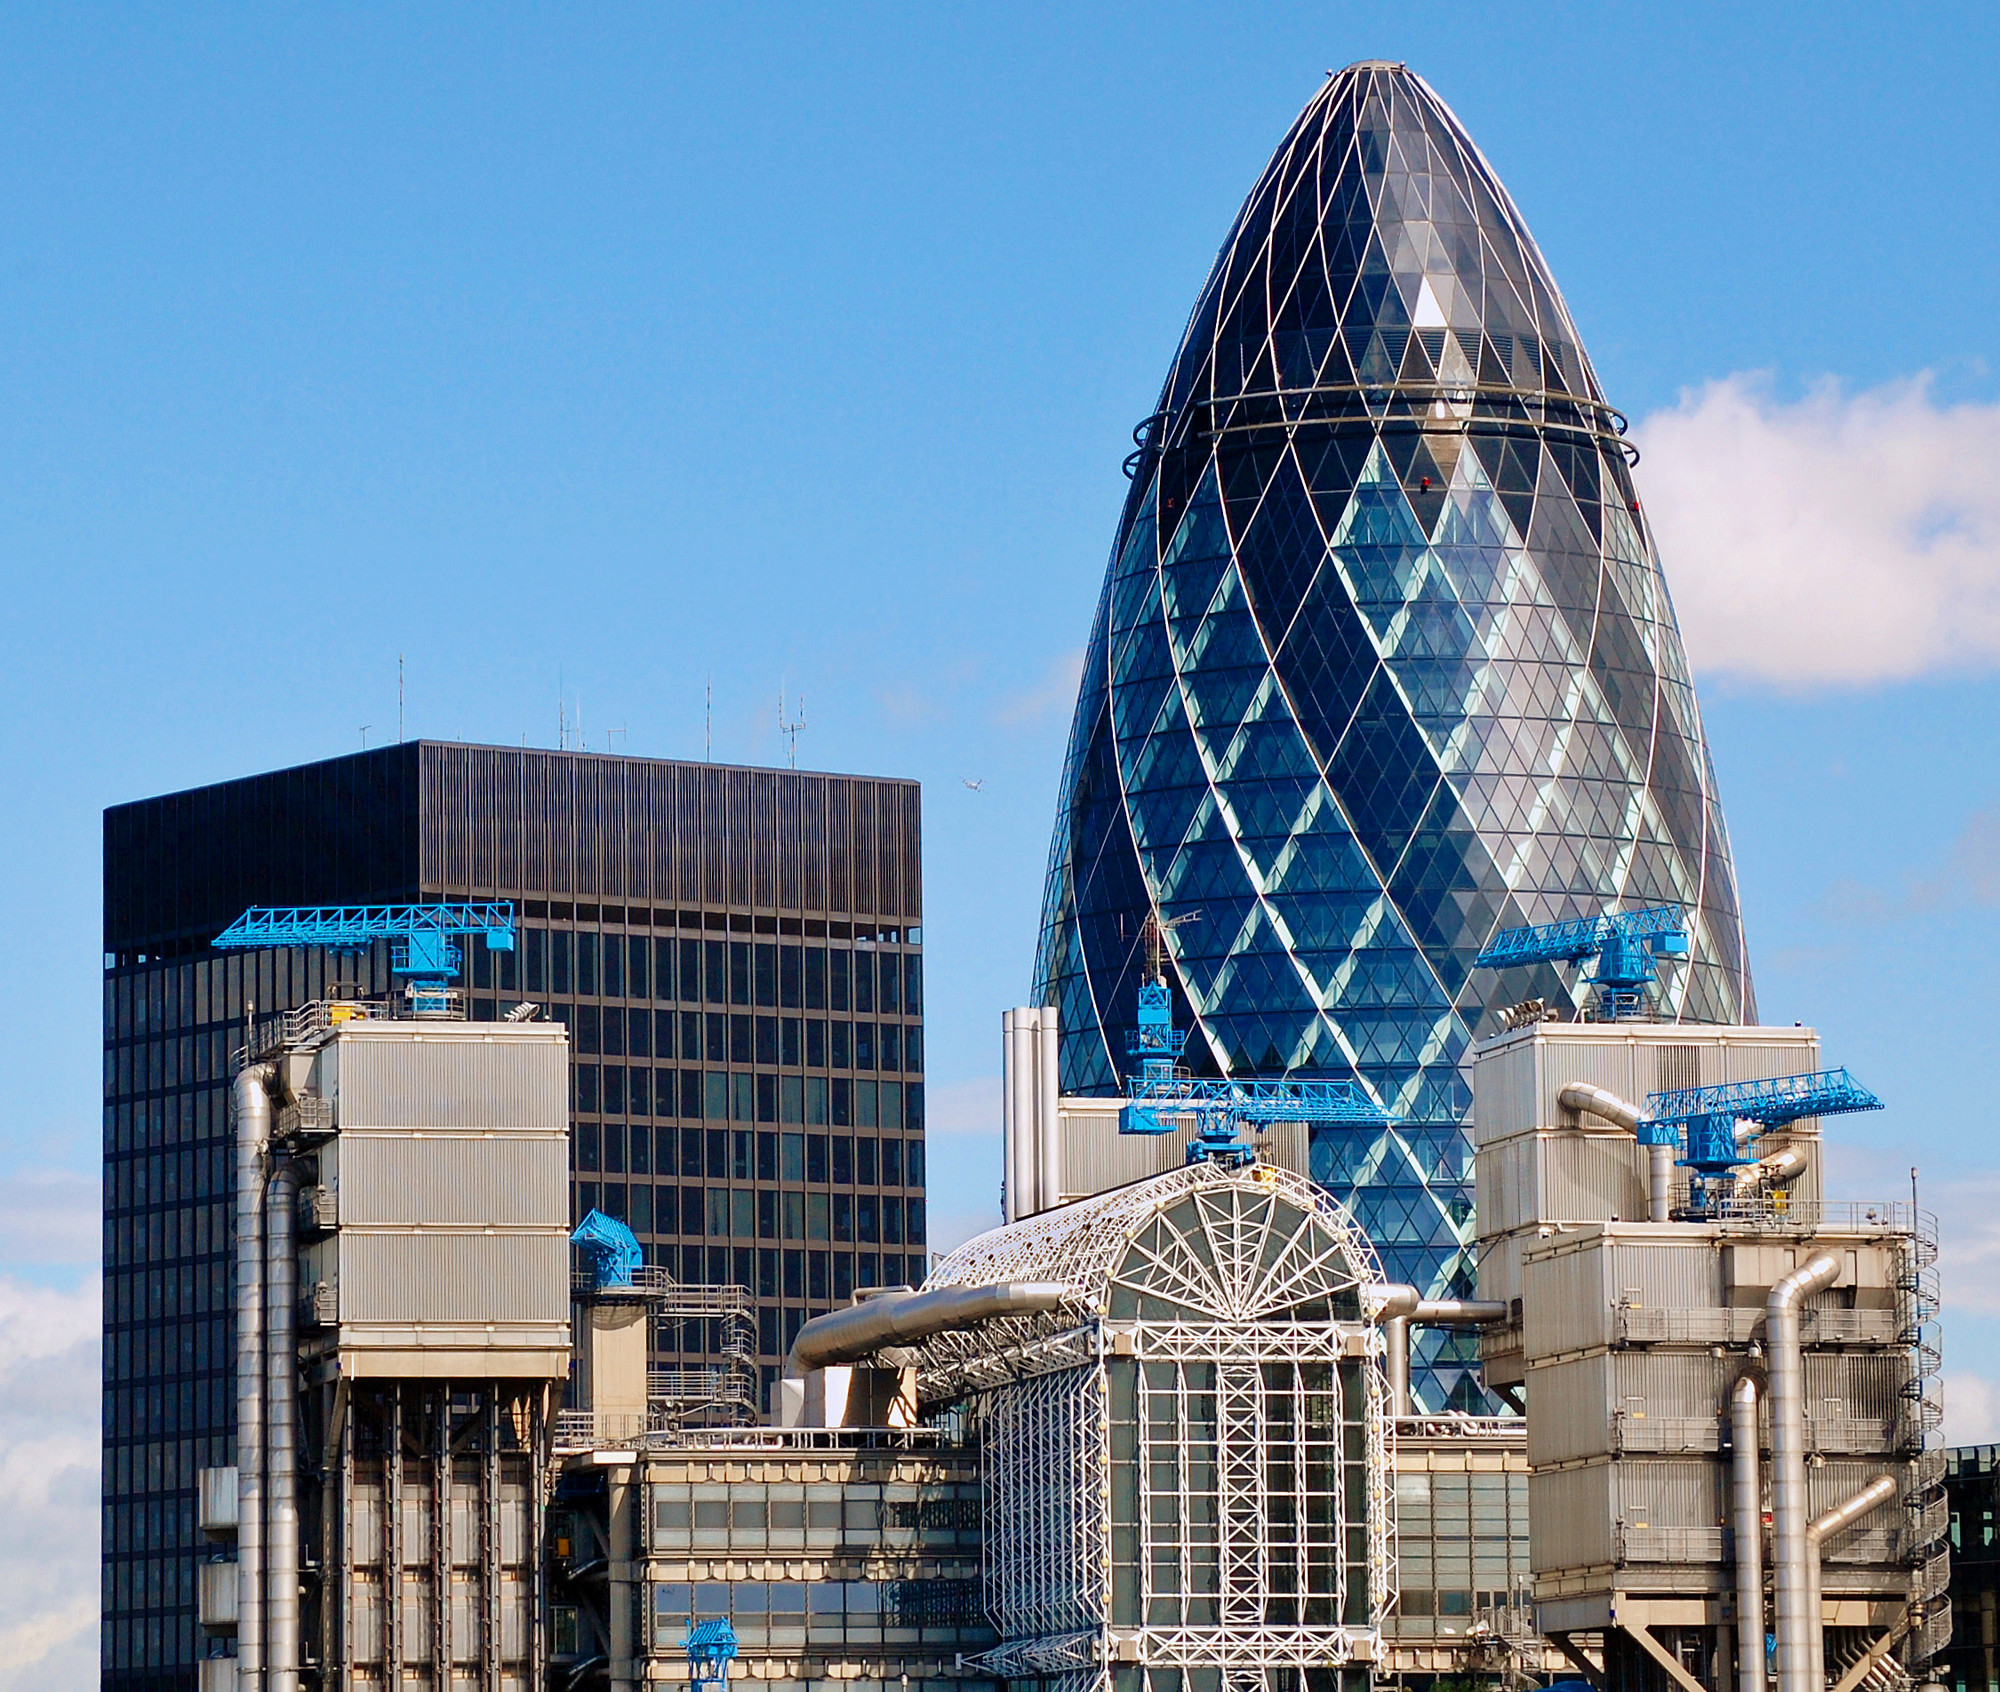 "Dichotomy Journal Plays the Odds: Open Call for Submissions on Taking Architectural Risks, The ""Gherkin"" in London (background) and the Lloyd's Building (foreground) redefined the skyline through their unorthodox designs. Image © Flickr CC User duncanh1"